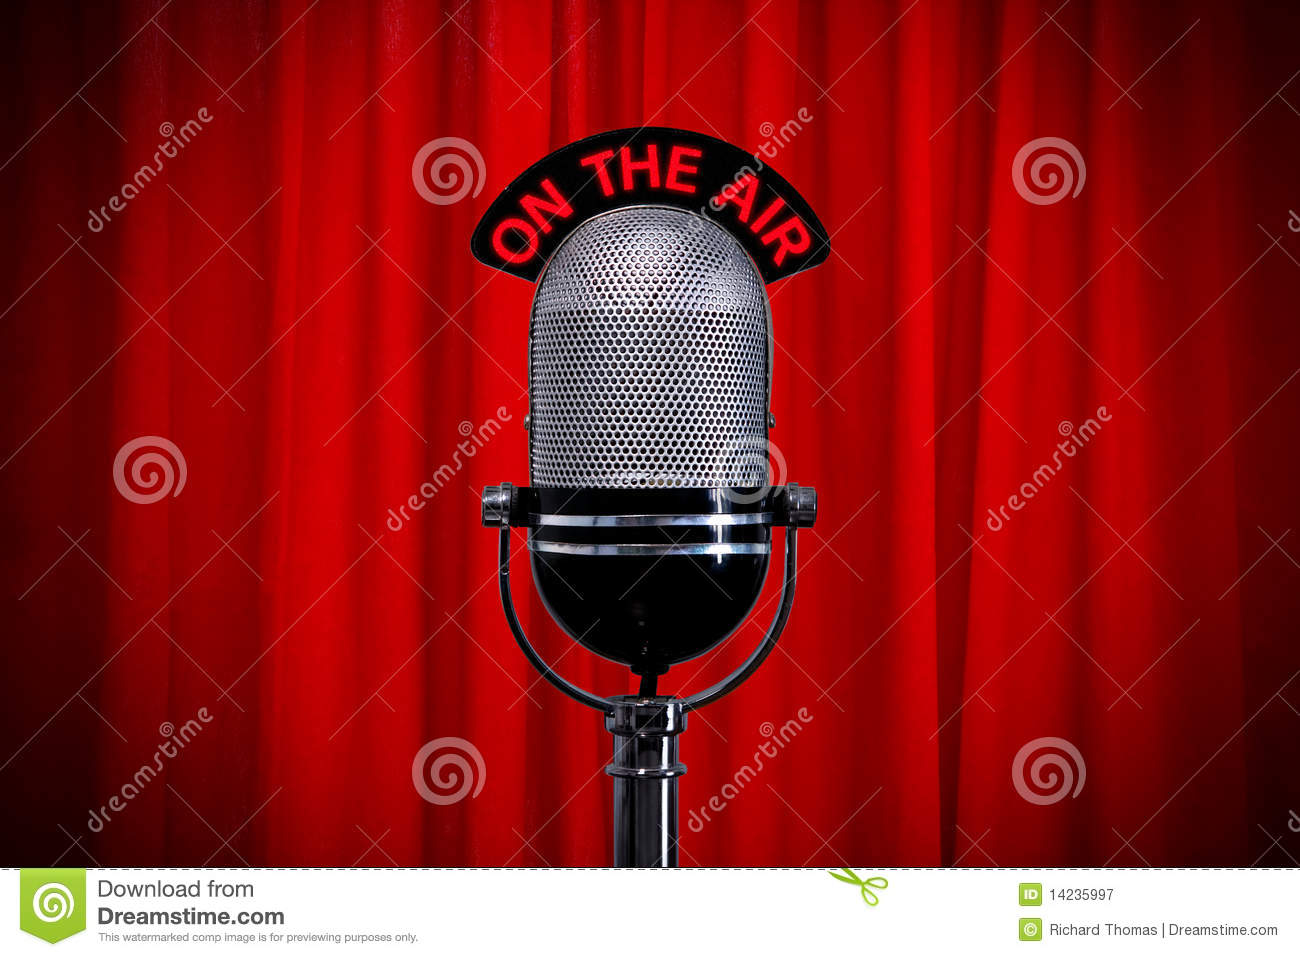 Microphone on stage with spotlight on red curtain